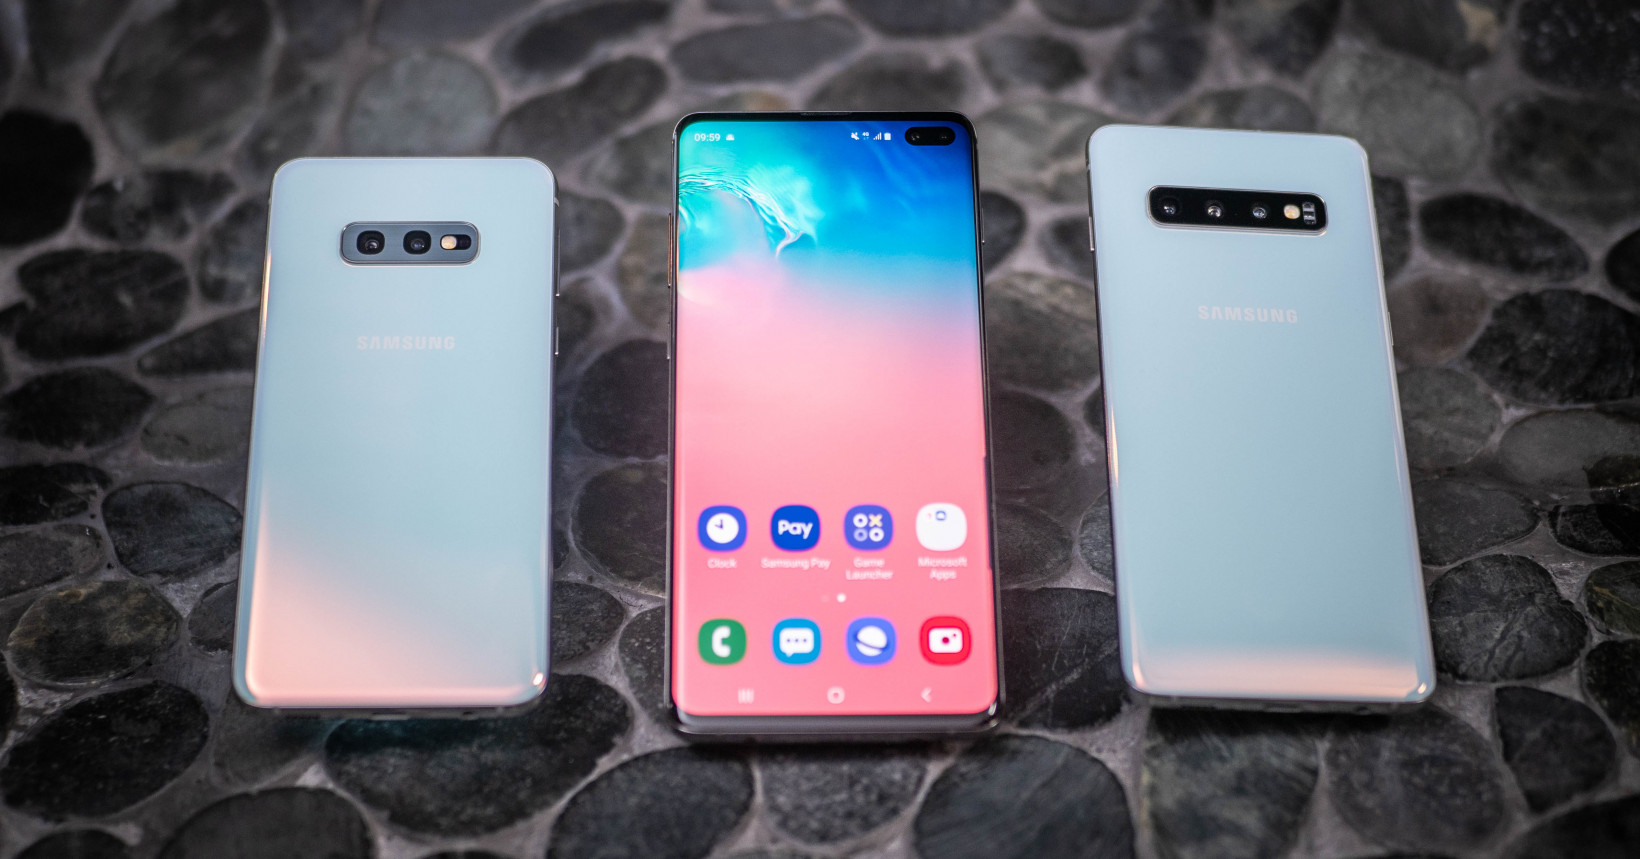 Samsung security flaw allows your fingerprint to unlock any Galaxy S10